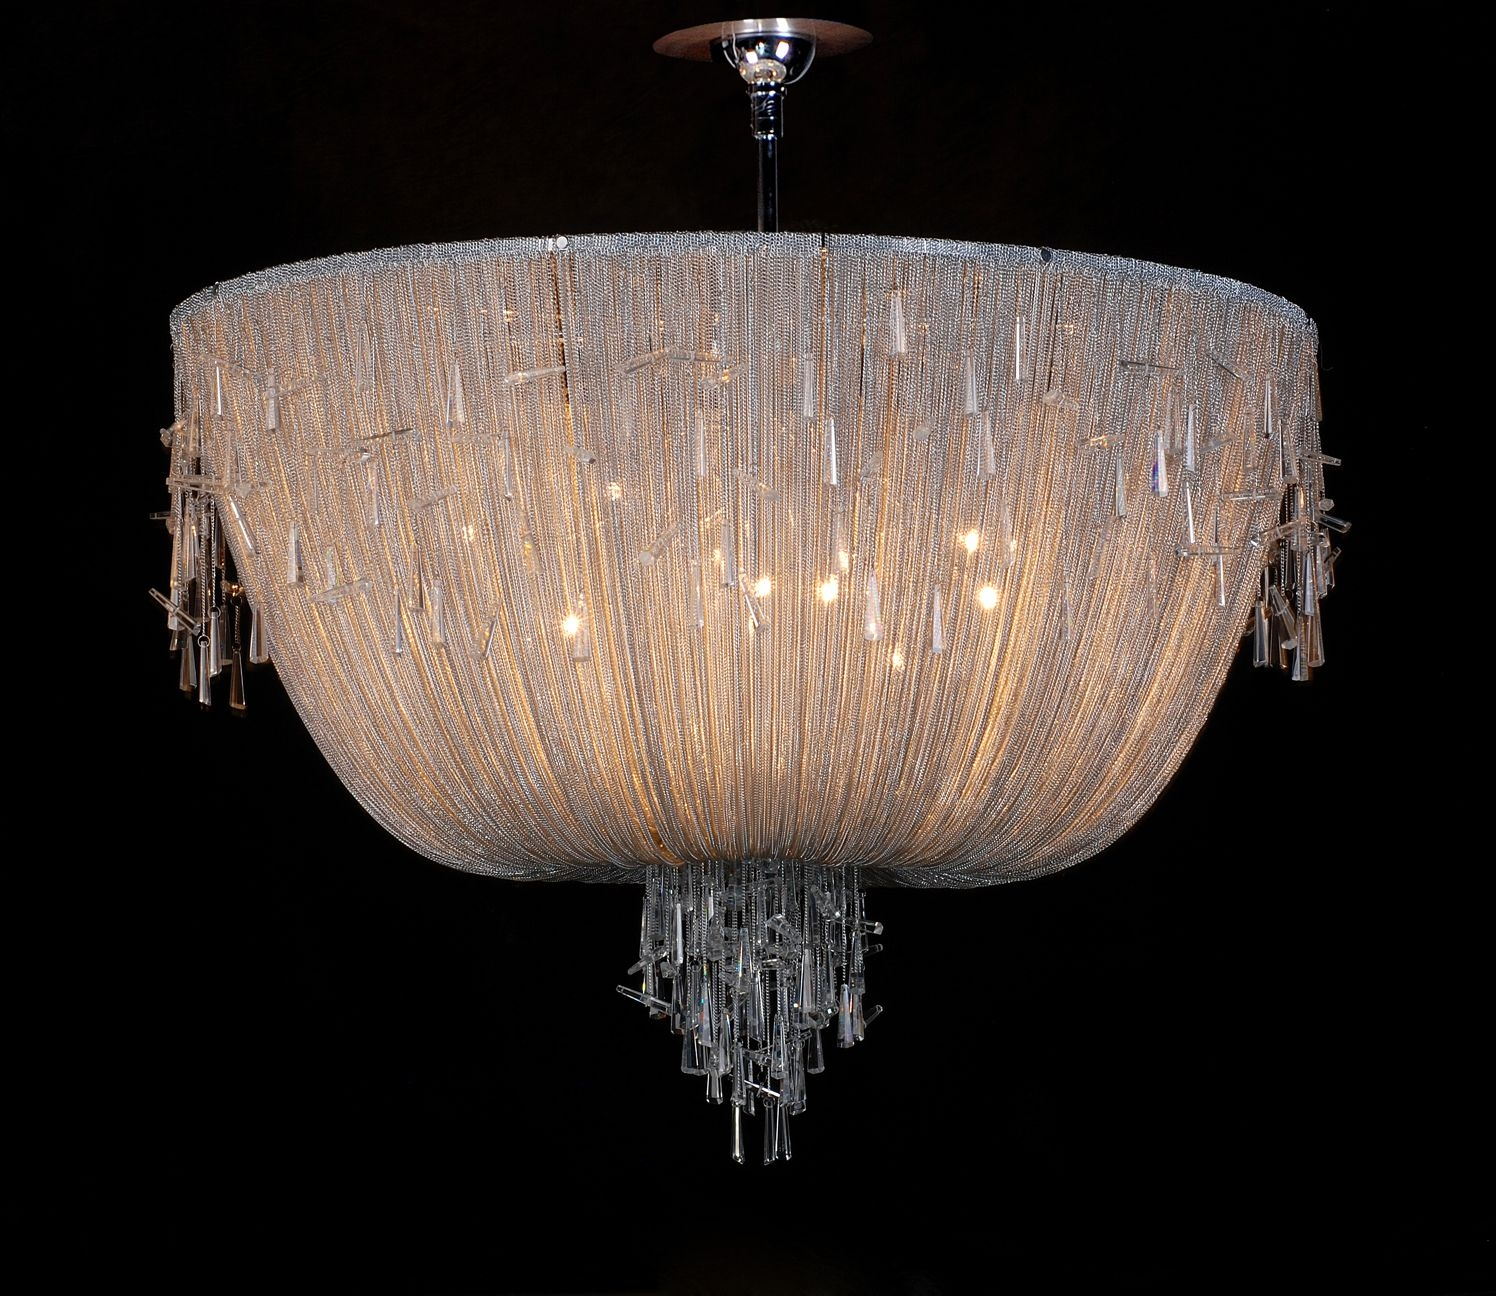 Home Bespoke Italian Chandeliers Hand Blown Glass Lighting Regarding Italian Chandeliers Contemporary (#3 of 12)